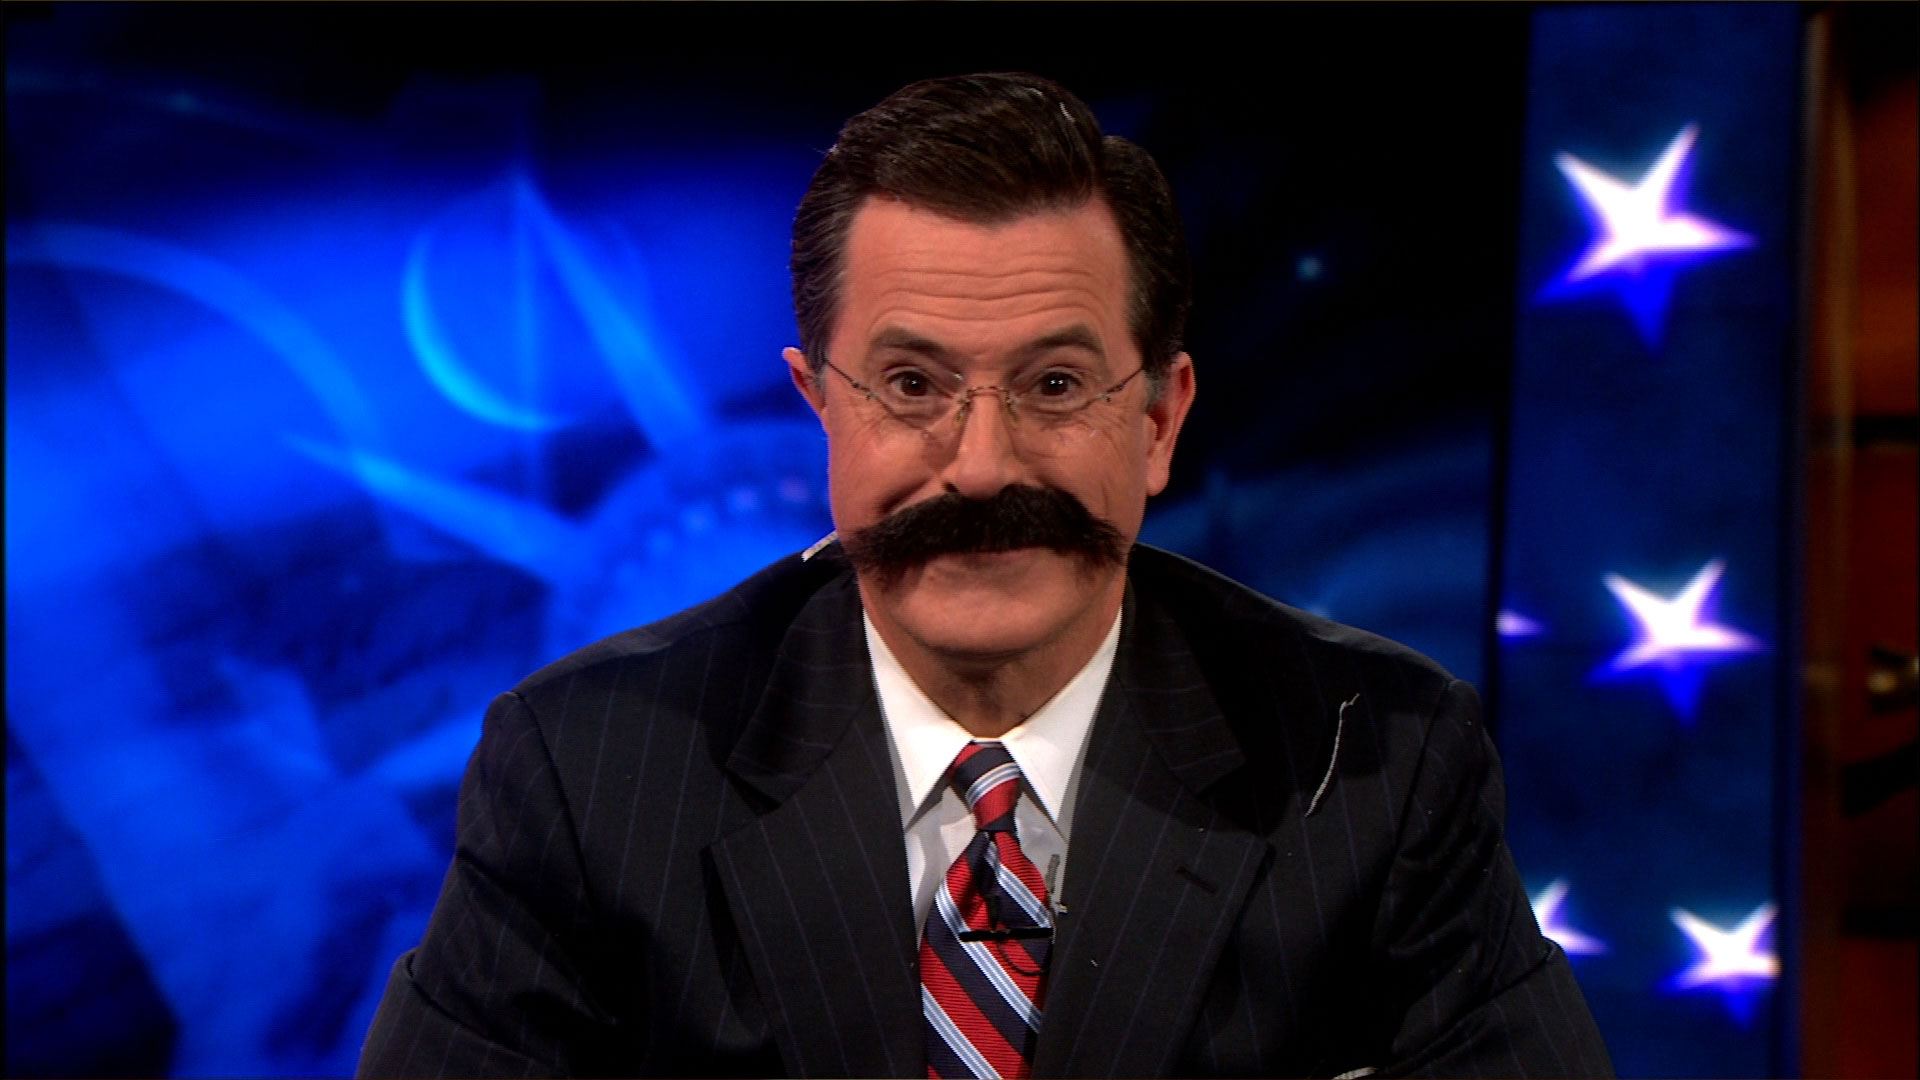 Stephen Colbert Wallpaper 8   1920 X 1080 stmednet 1920x1080